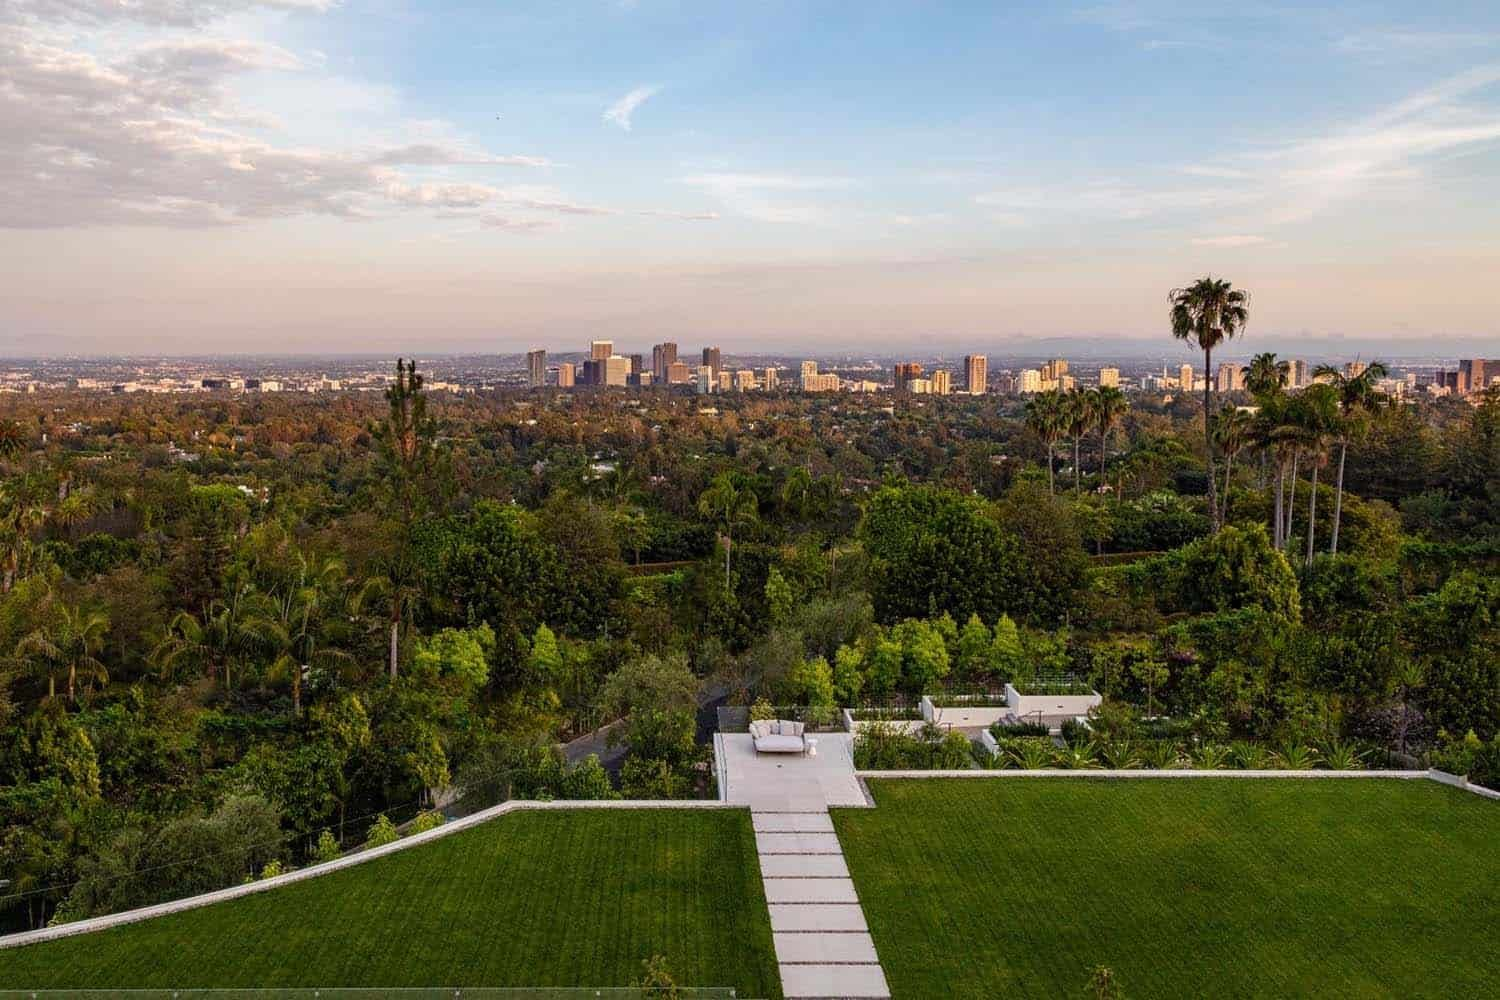 Jaw Dropping Dream Home Overlooking The Los Angeles Skyline In 2020 Bel Air Road Bel Air Mansion Mansions